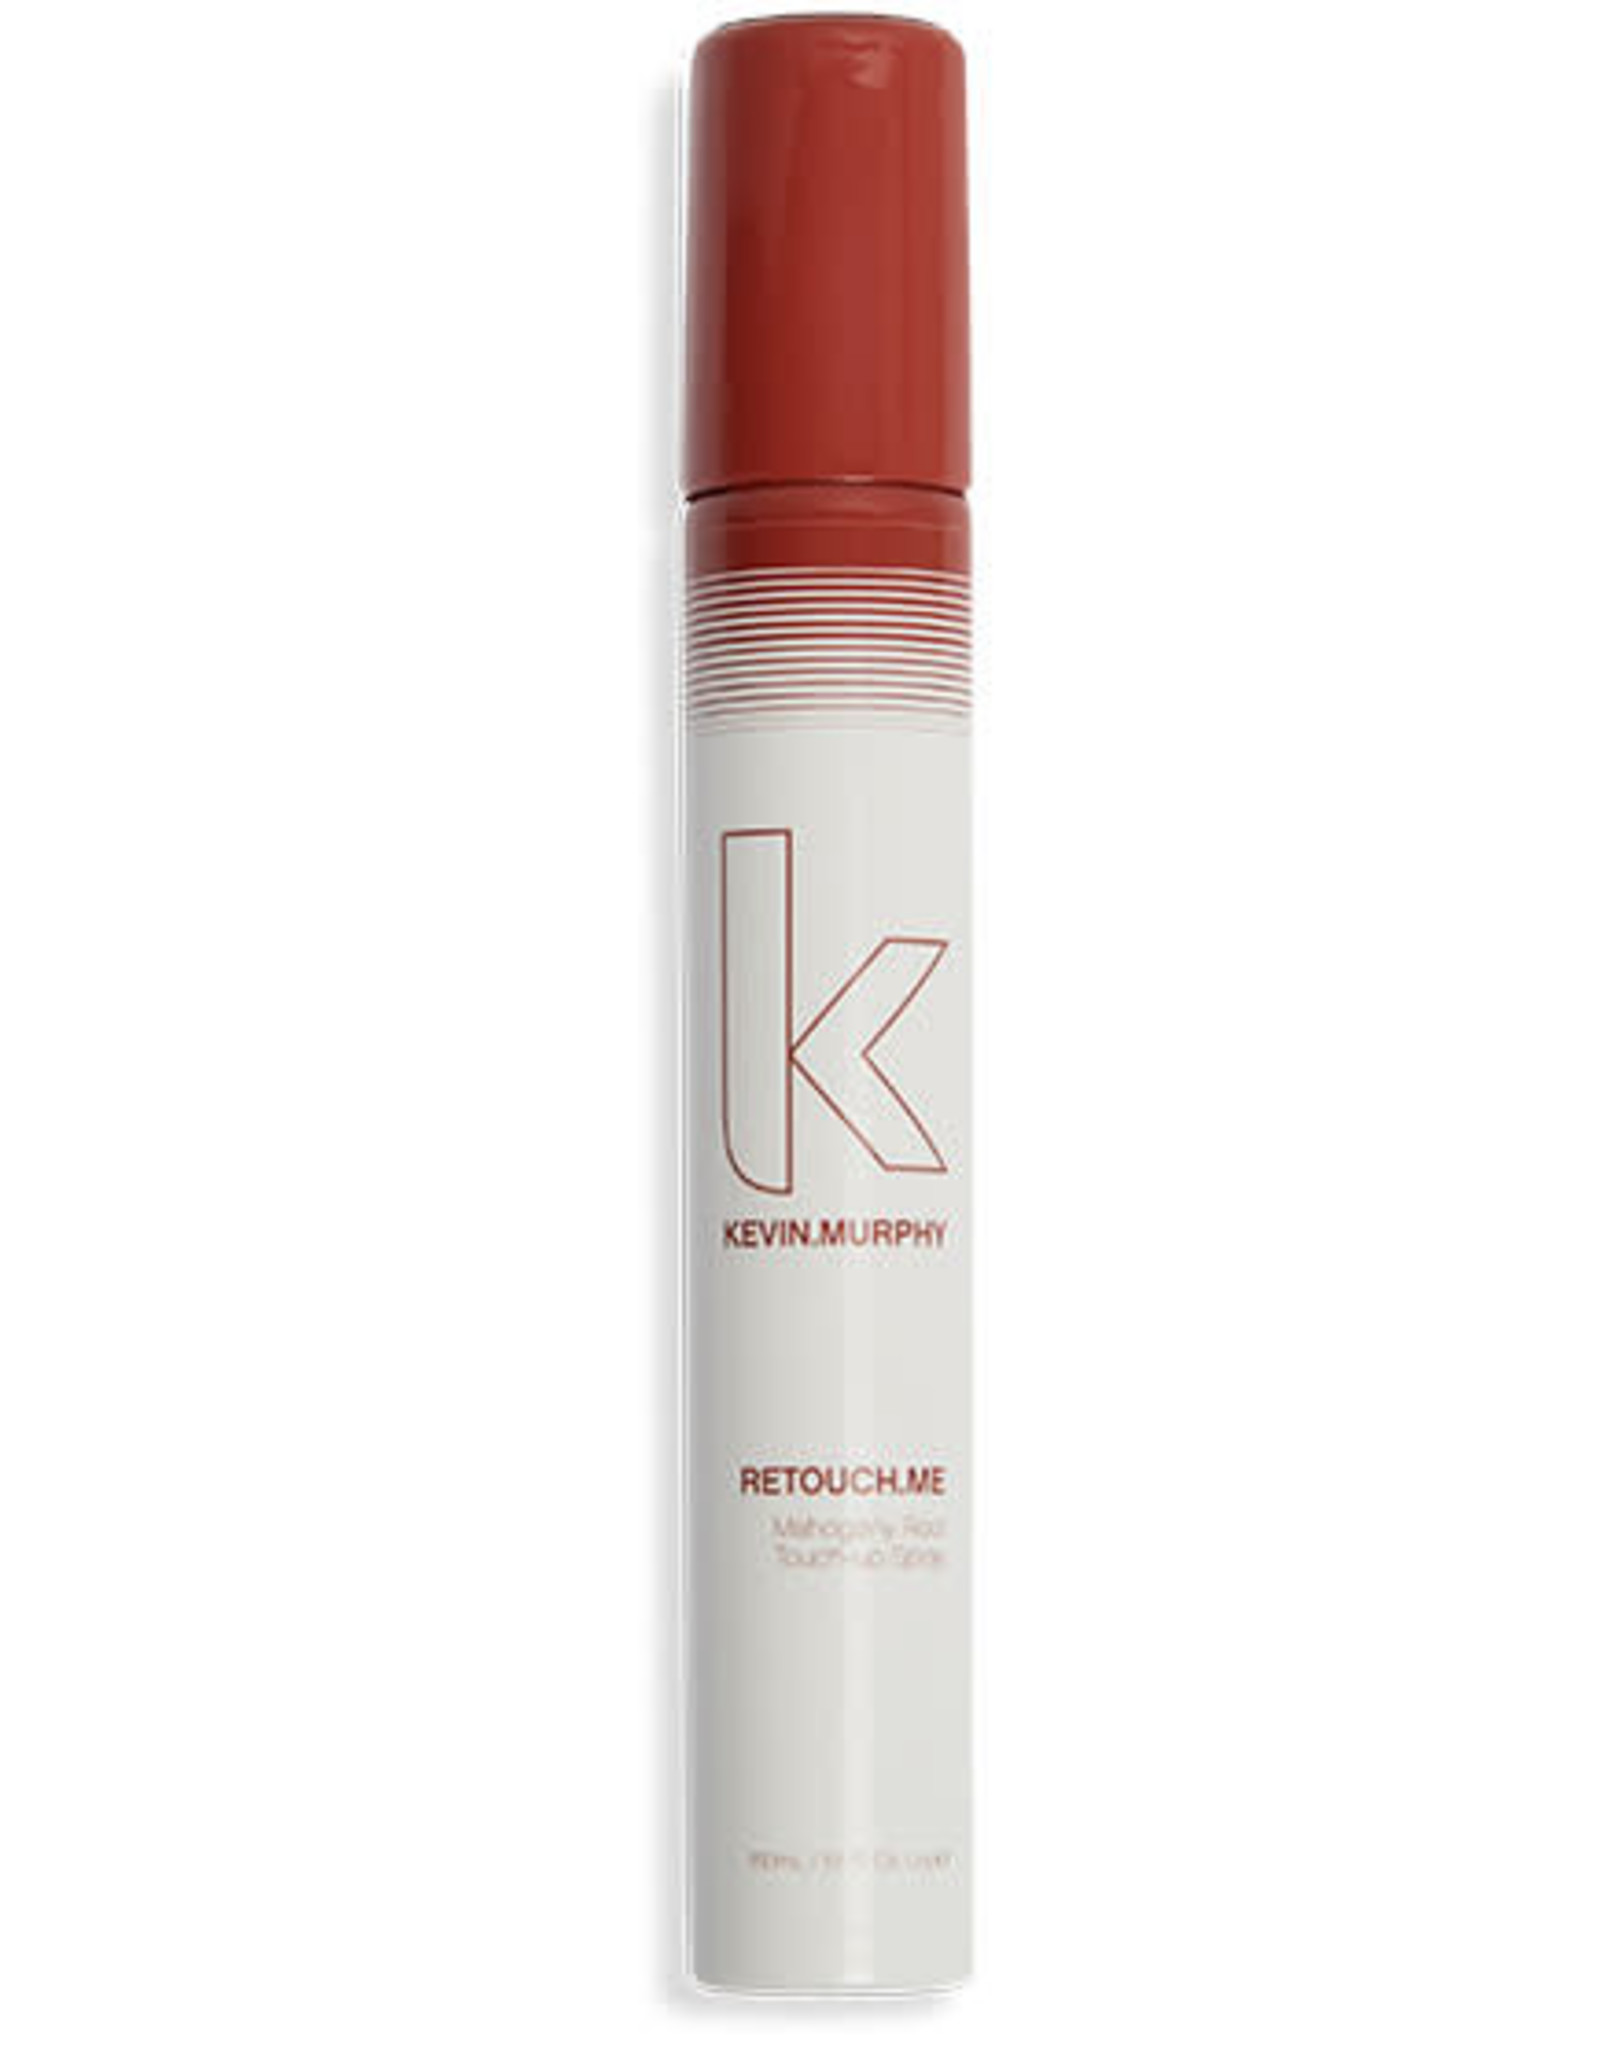 KEVIN.MURPHY RETOUCH.ME Root touch-up spray